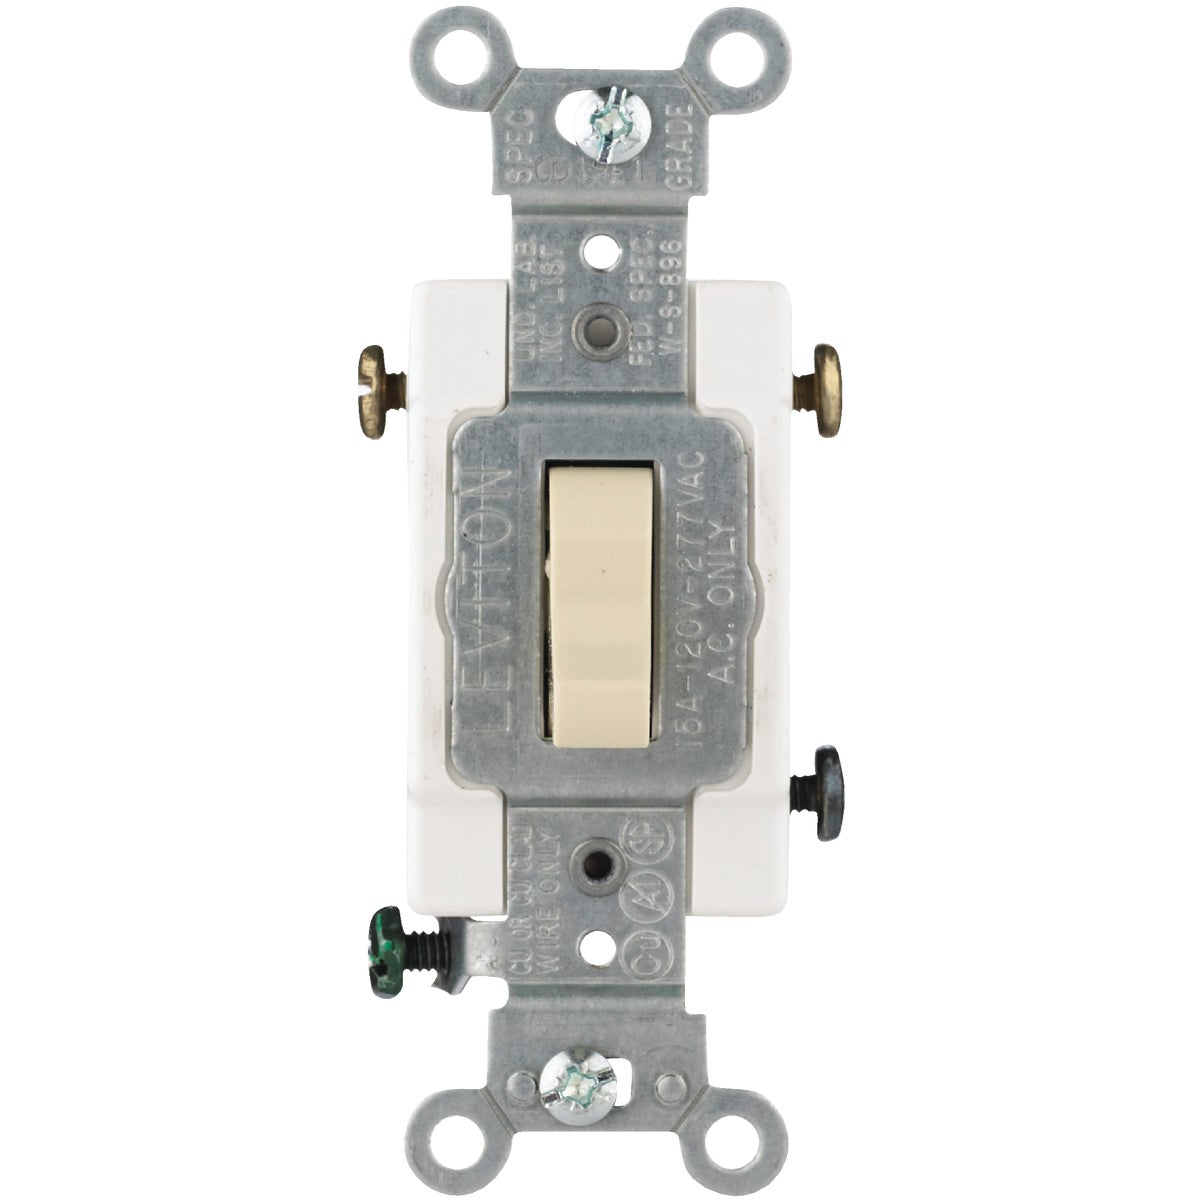 IV 3-WAY GRND SWITCH - S01-CS315-2IS by Leviton Mfg Co